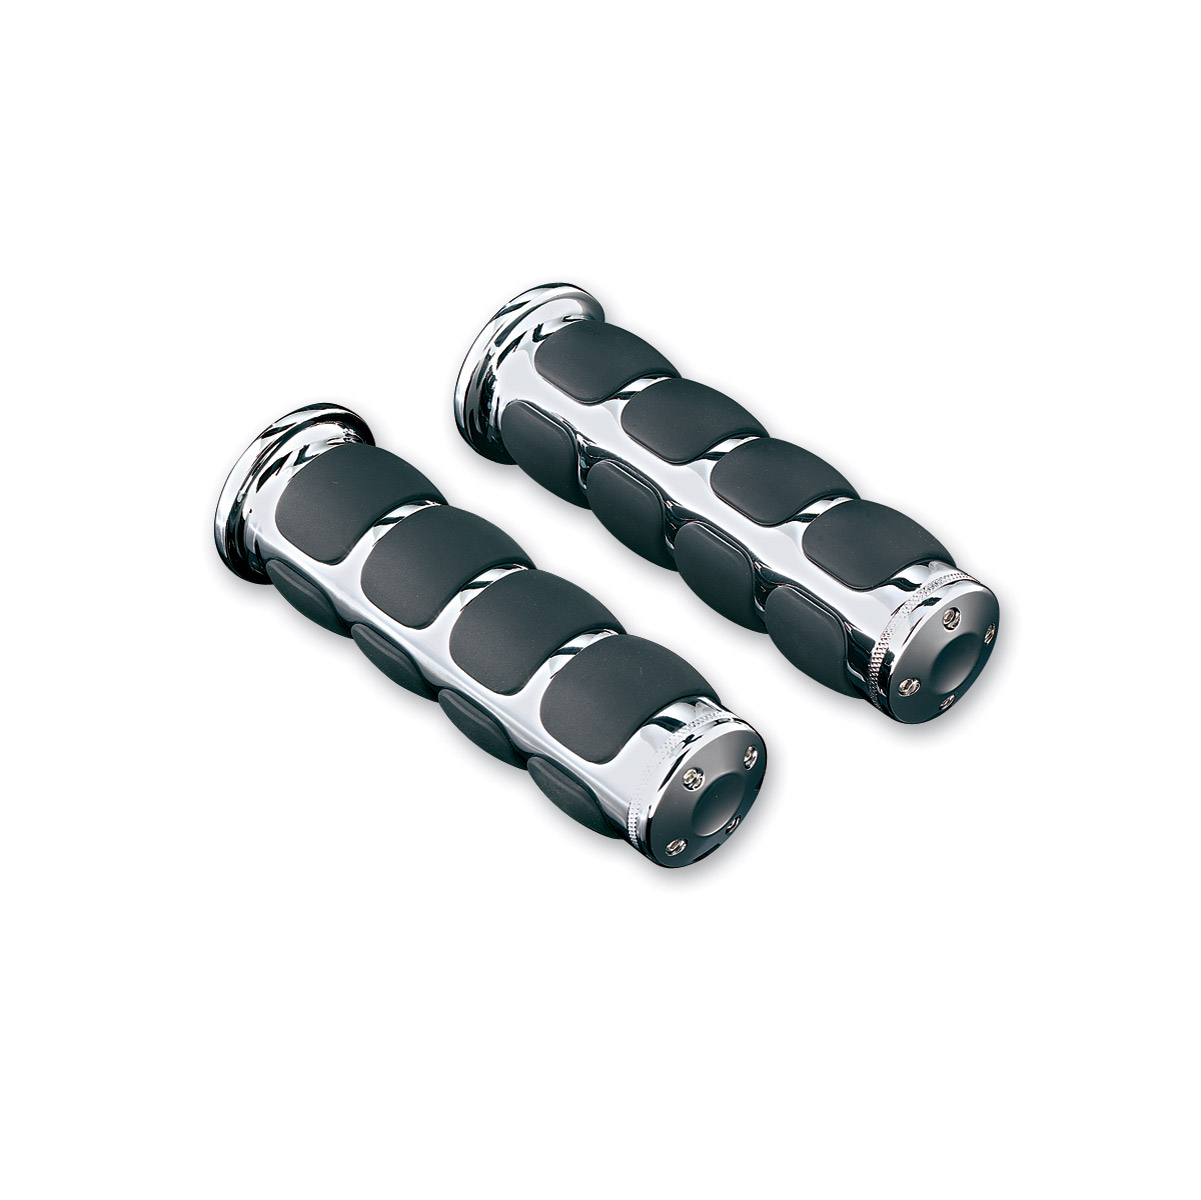 Kuryakyn Universal Chrome  ISO Grips for 1